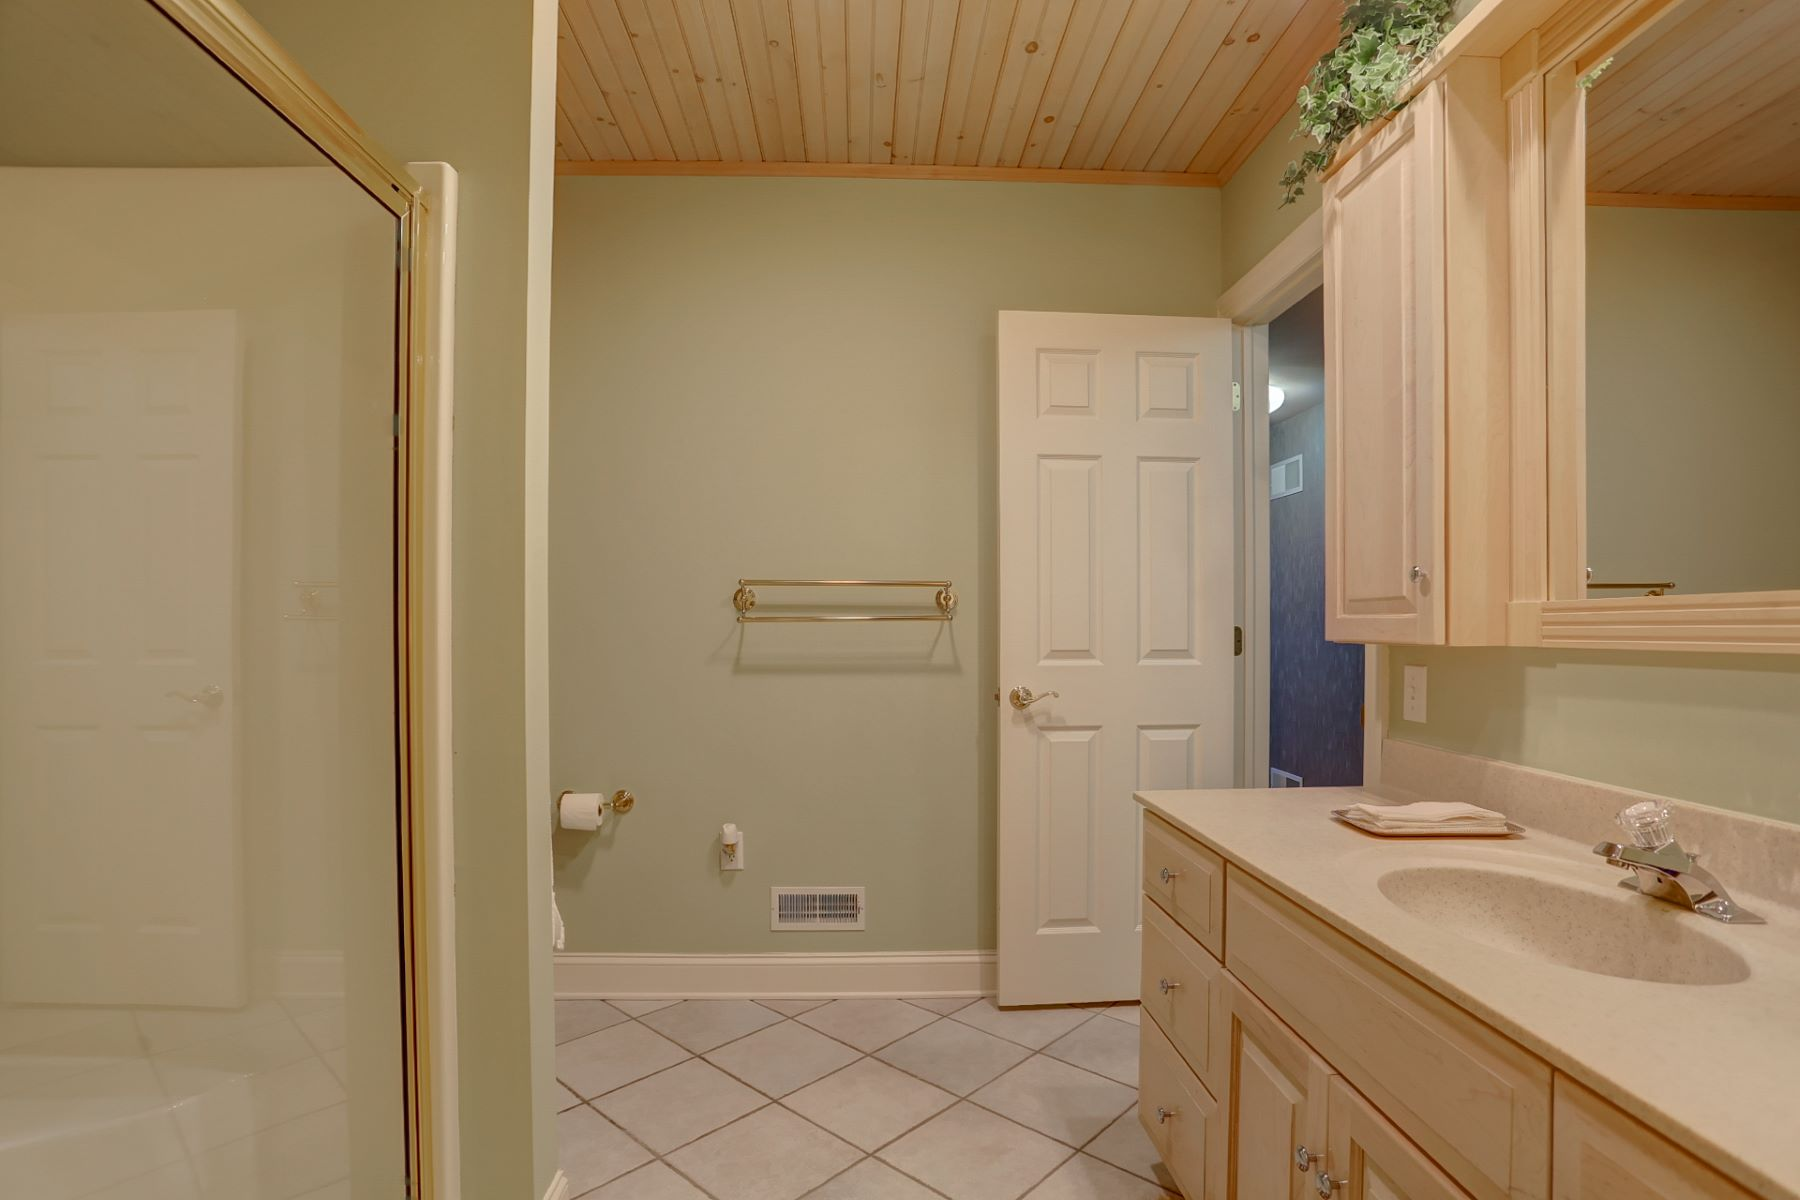 Additional photo for property listing at 354 N Farm Drive  Lititz, Pennsylvania 17543 United States